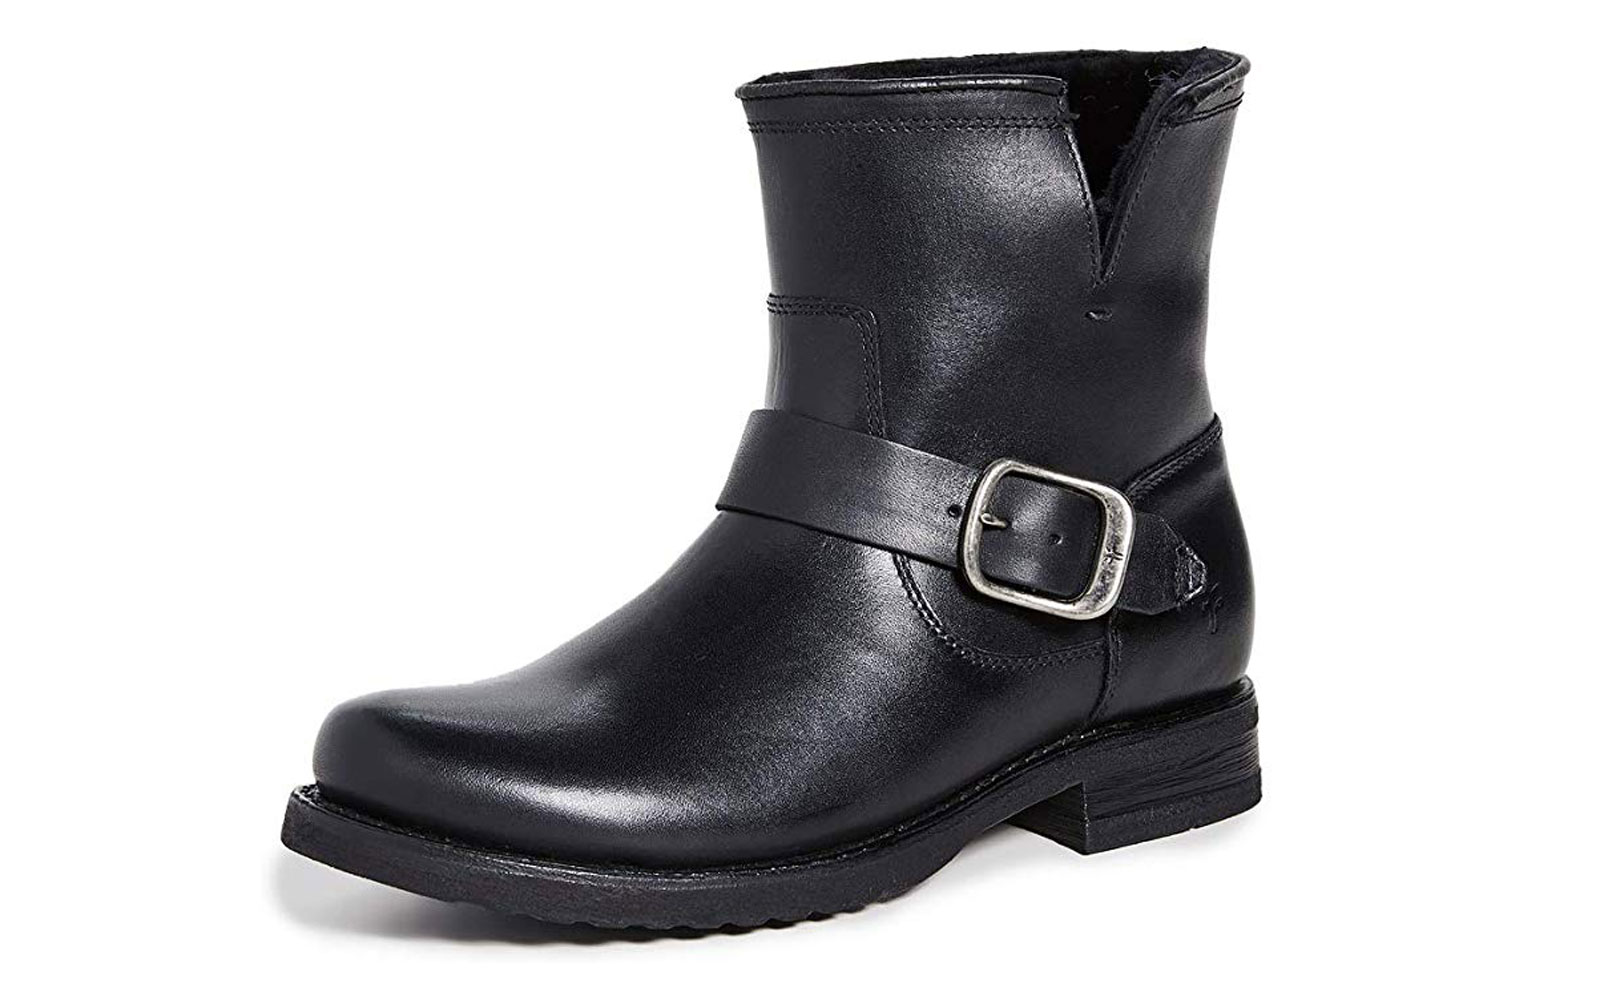 Black Leather Boots with Buckle